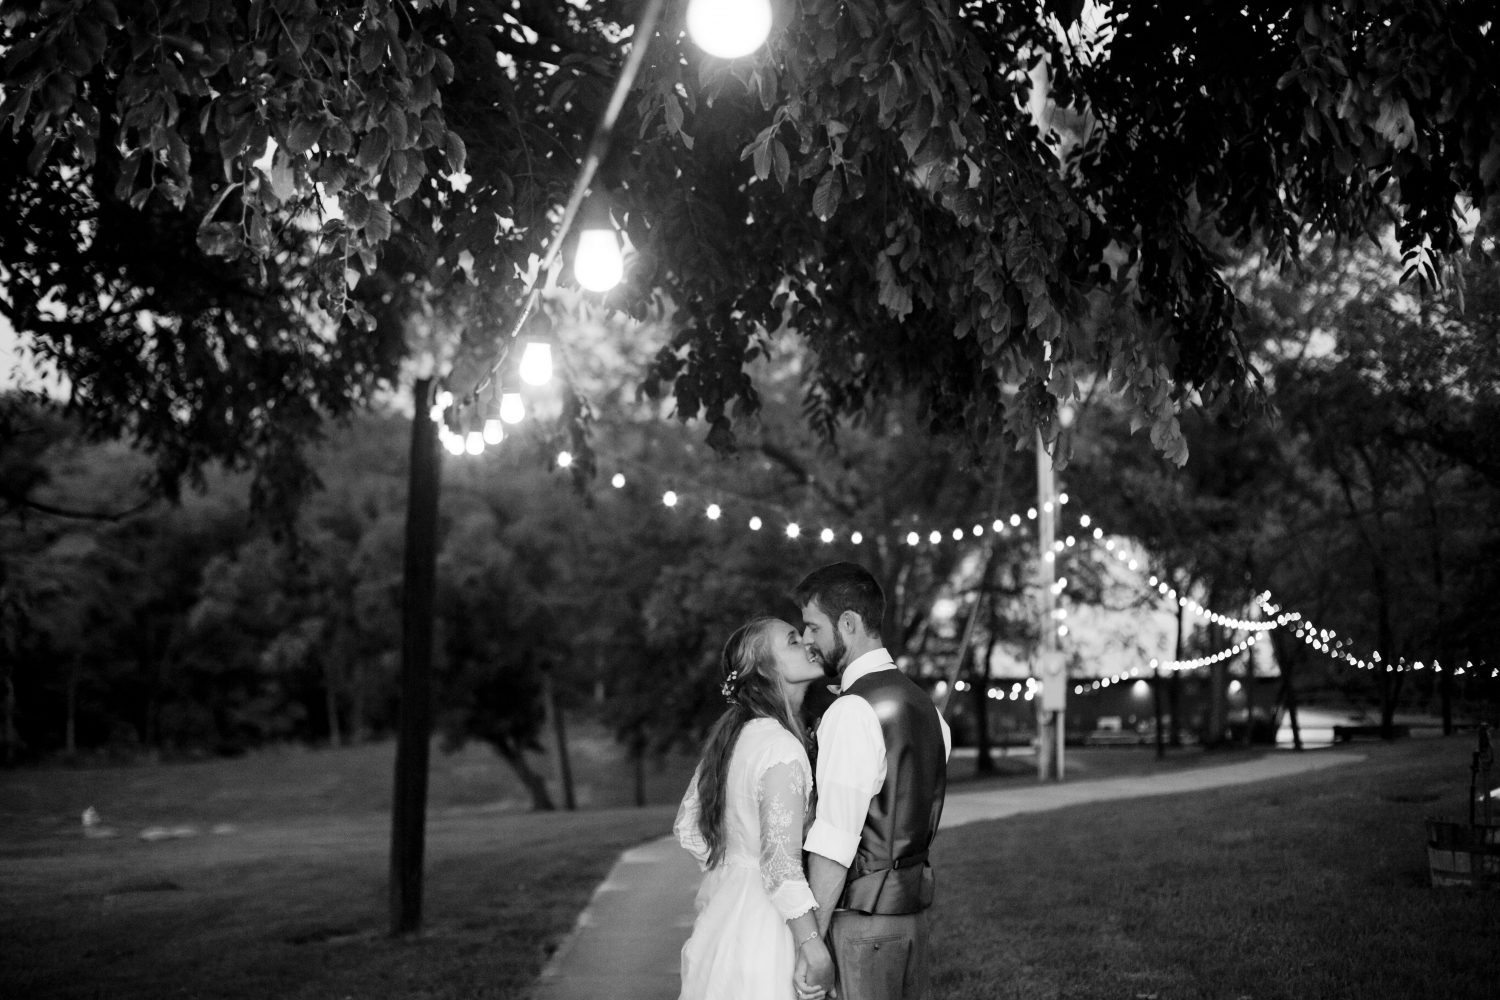 Couple holding hands with backs to the camera and leaning into each other for a kiss. Bistro lights hang overhead among a tree covered path leading to a barn in the background.